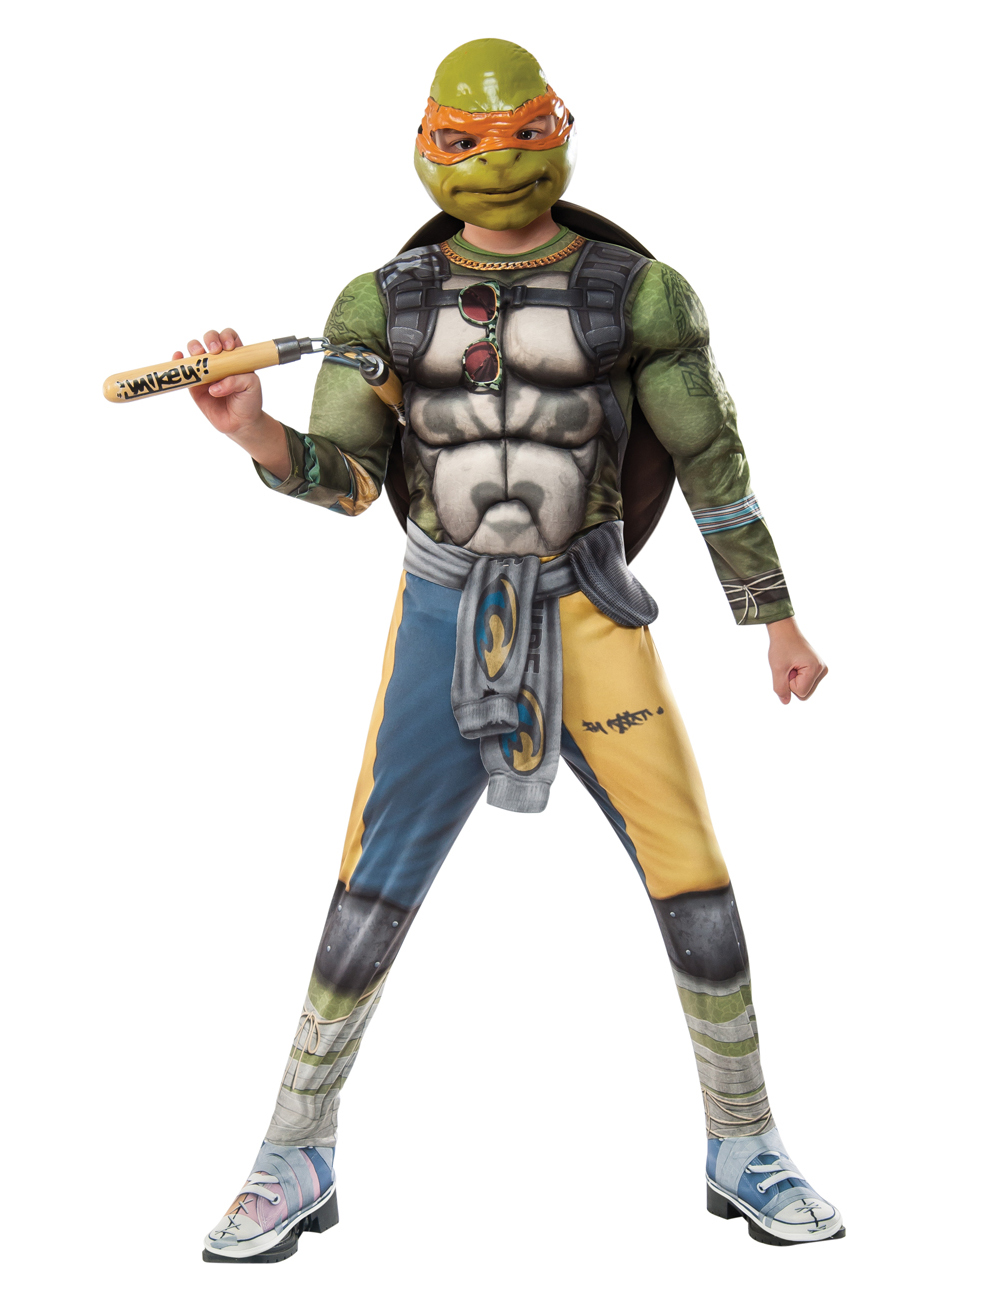 Teenage Mutant Ninja Turtles 2: Michelangelo Deluxe Movie Version Child Costume 245283